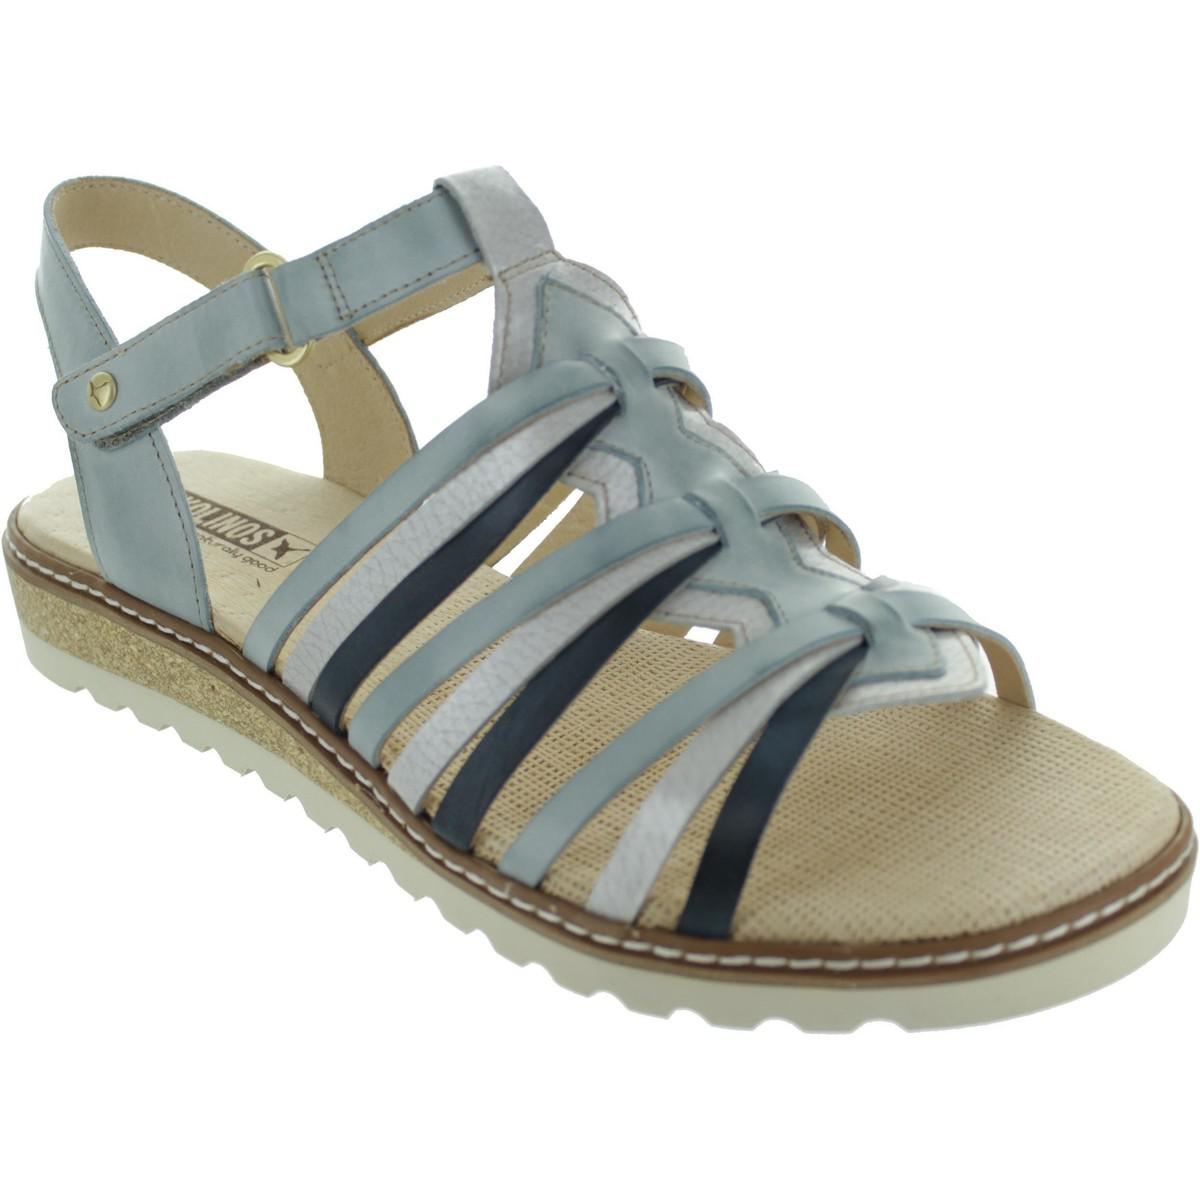 Pikolinos W1L-0505C3 women's Sandals in Latest Really Outlet Sneakernews Pay With Visa Cheap Online 61mFy